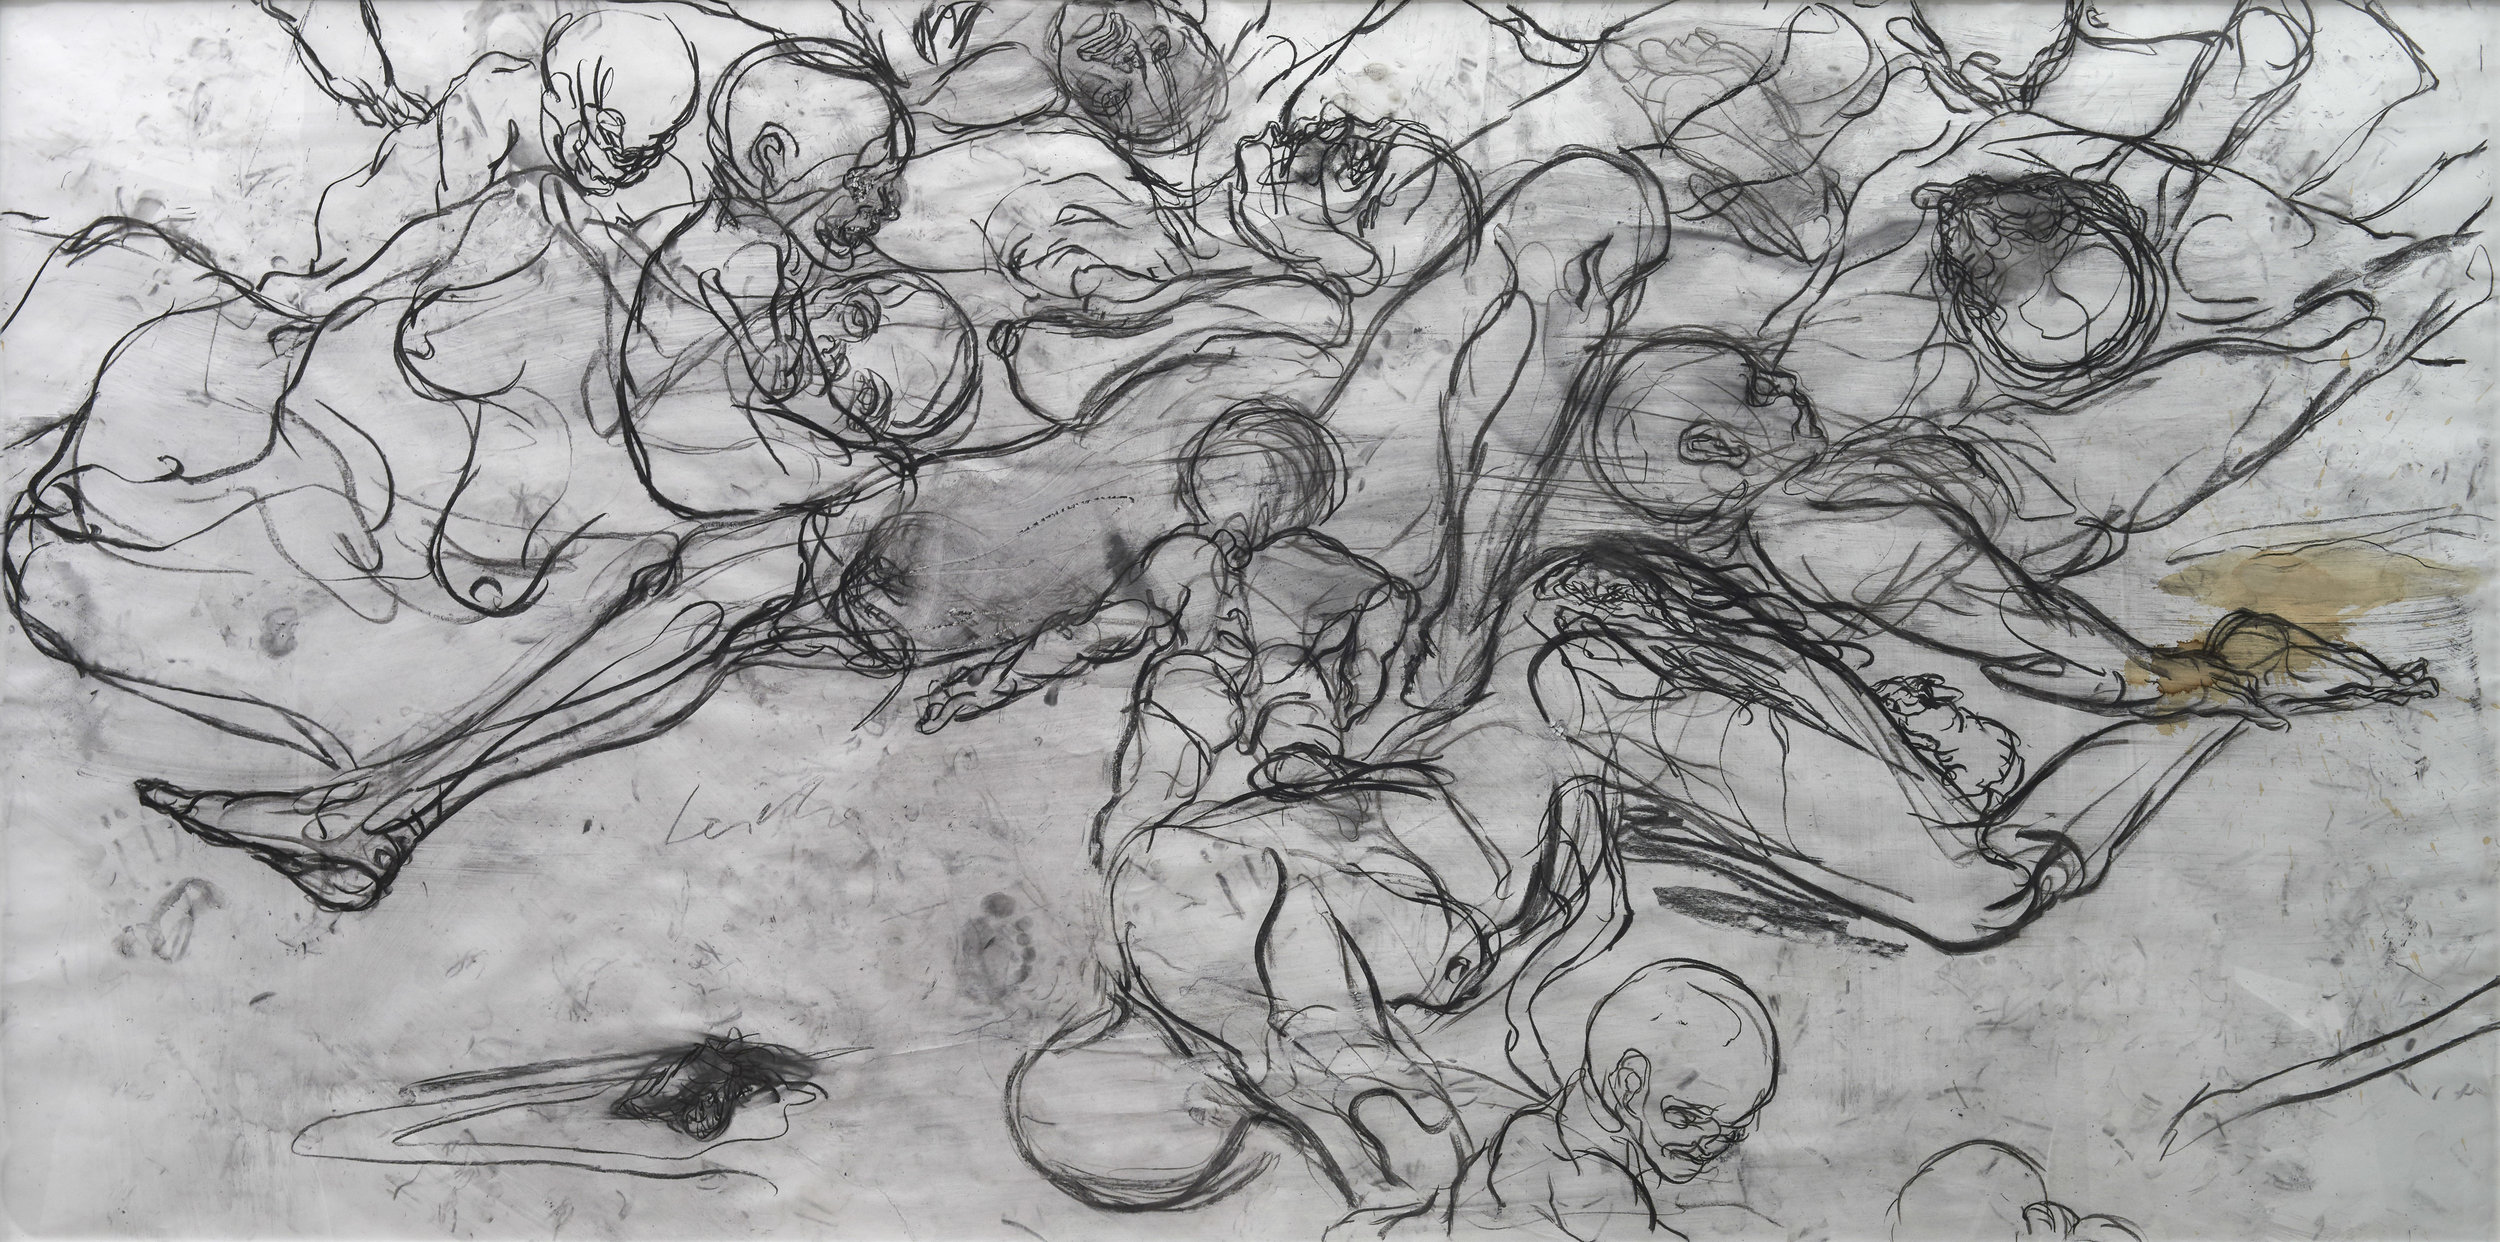 Dante's Dream (detail), 2010. Charcoal on paper, 1,5 x 3 m.